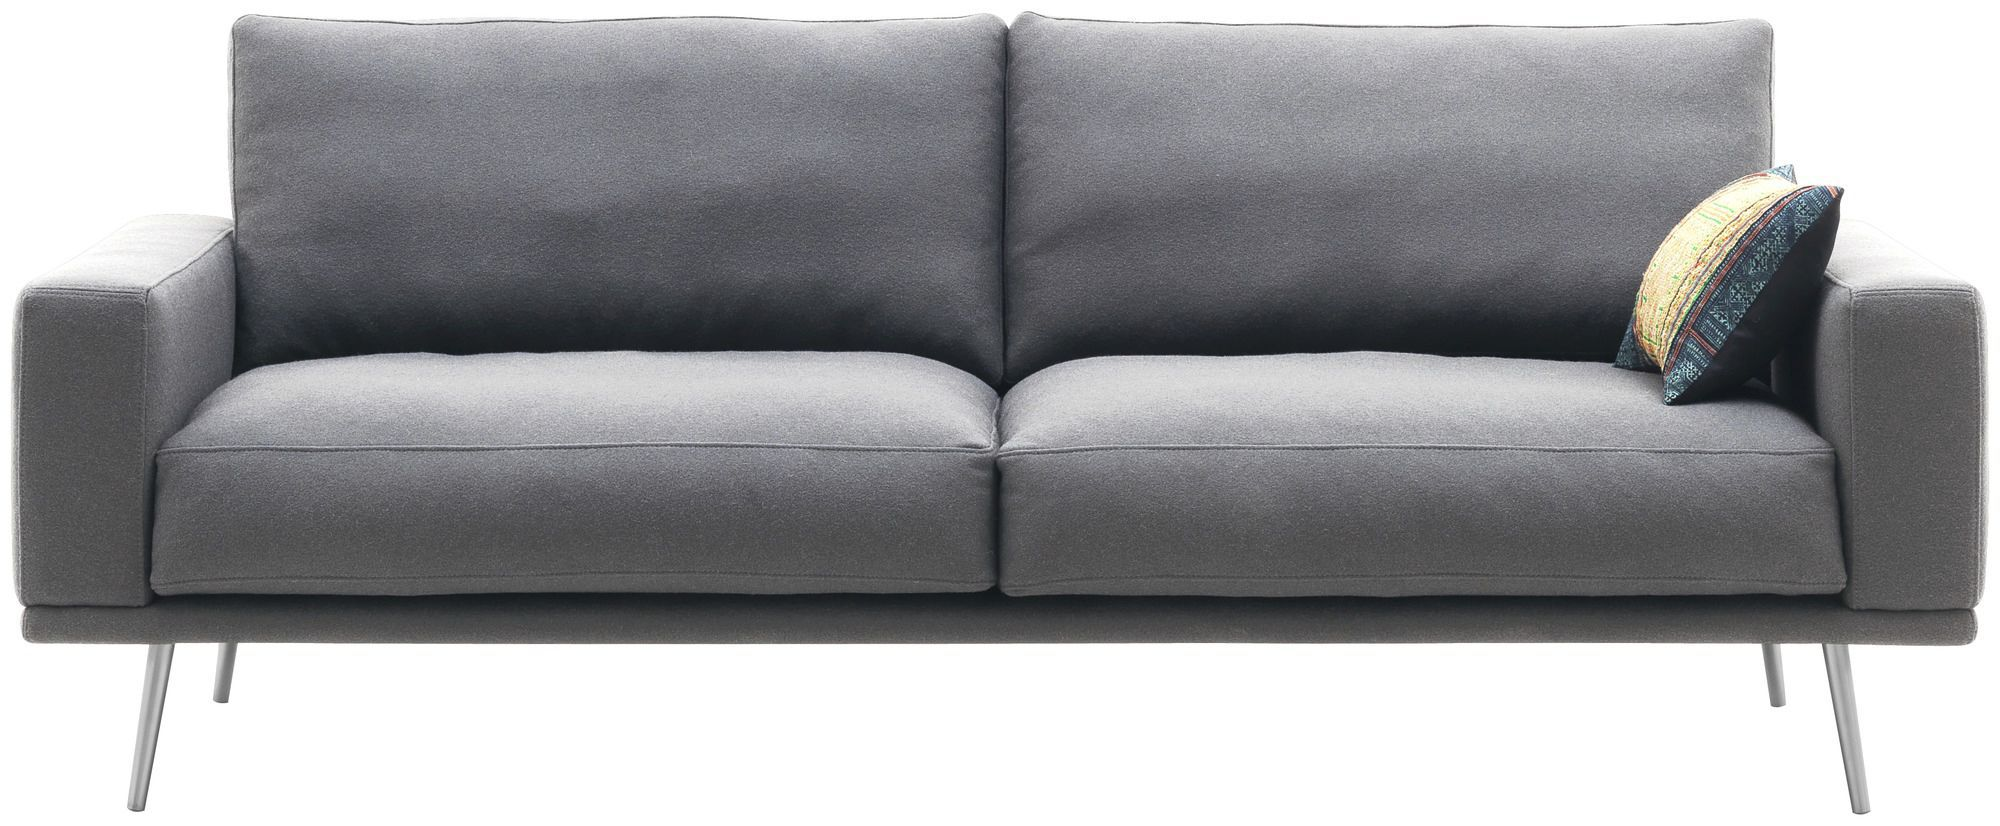 Great ... Corner Sofa / Modular / Contemporary / Leather CARLTON By Anders  Nørgaard BoConcept ...